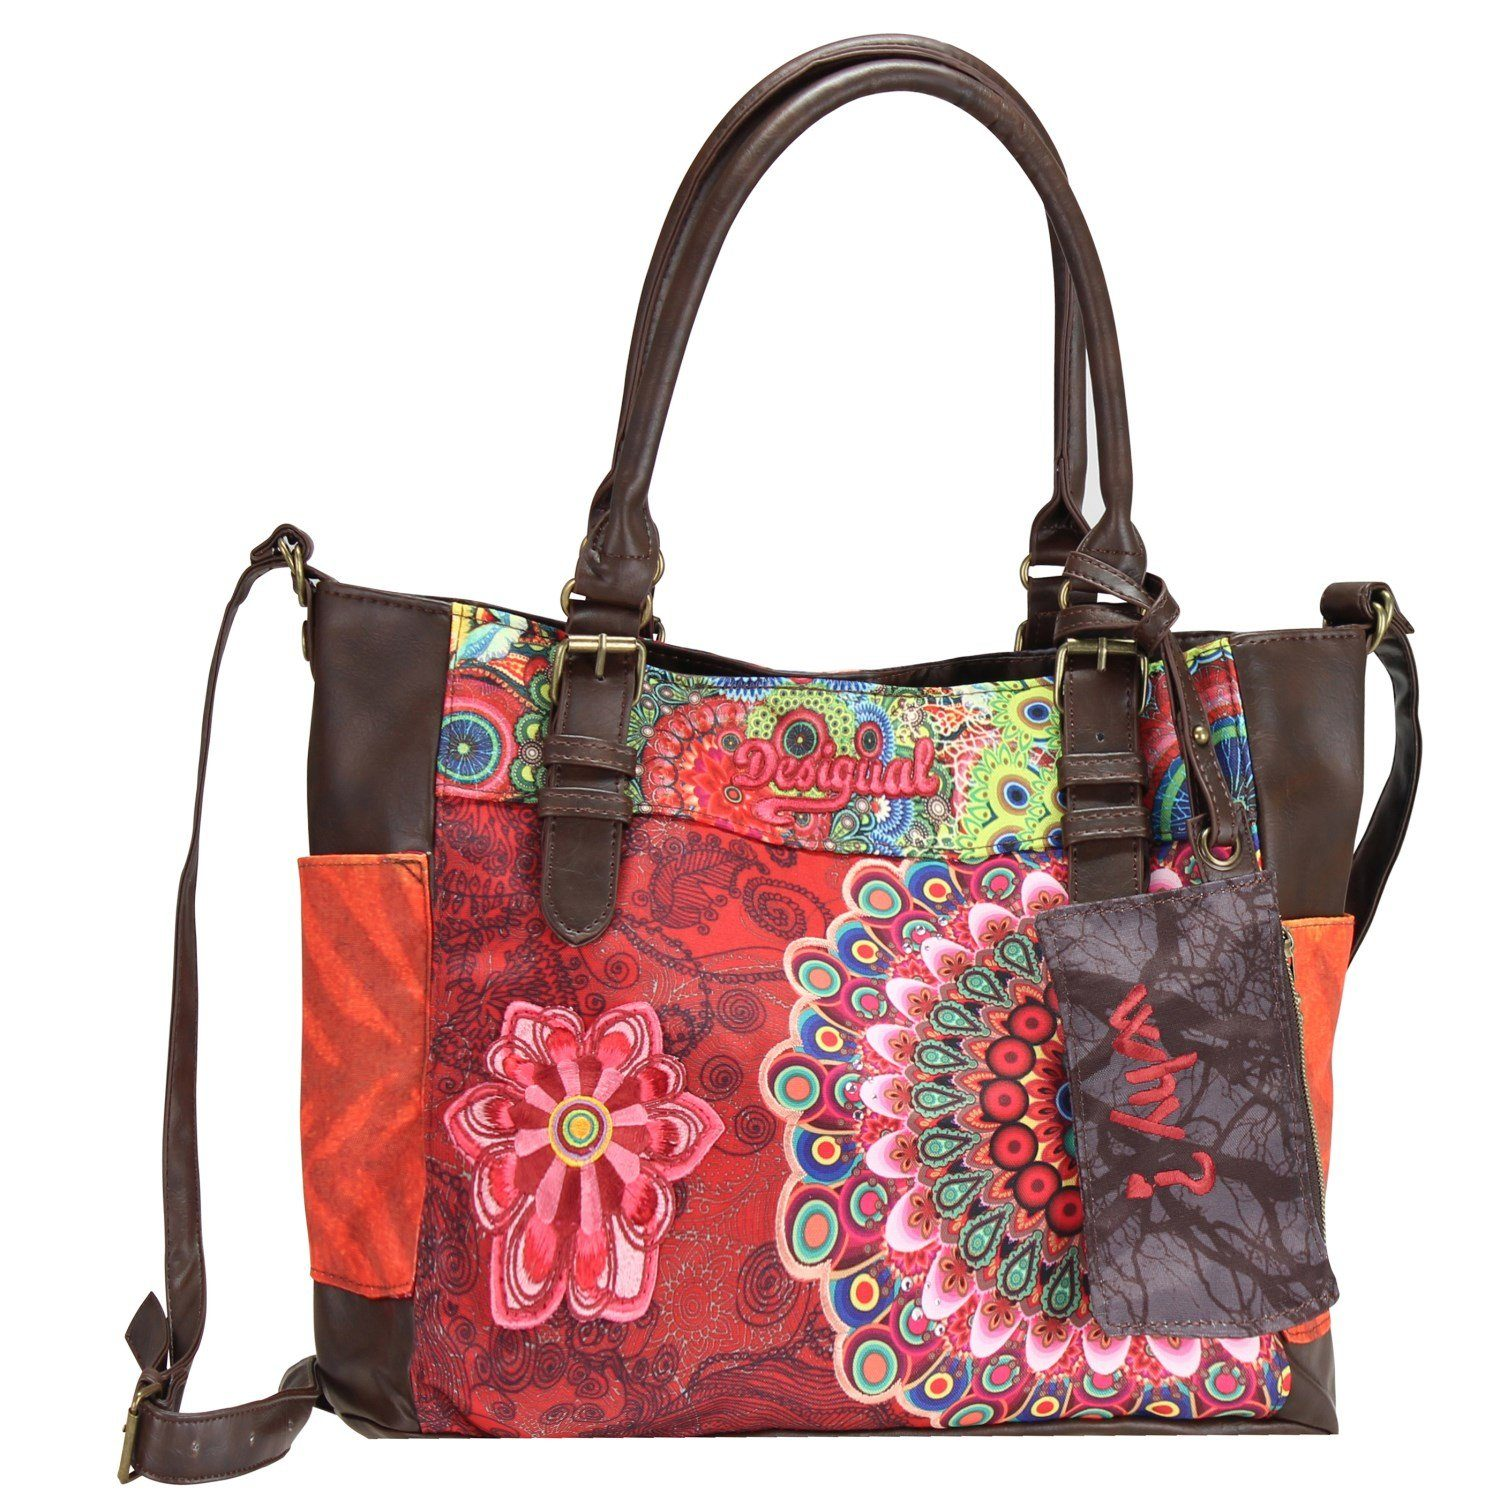 Desigual BOLS Saintropez Seduccio Carry Shopper Tasche 34 cm